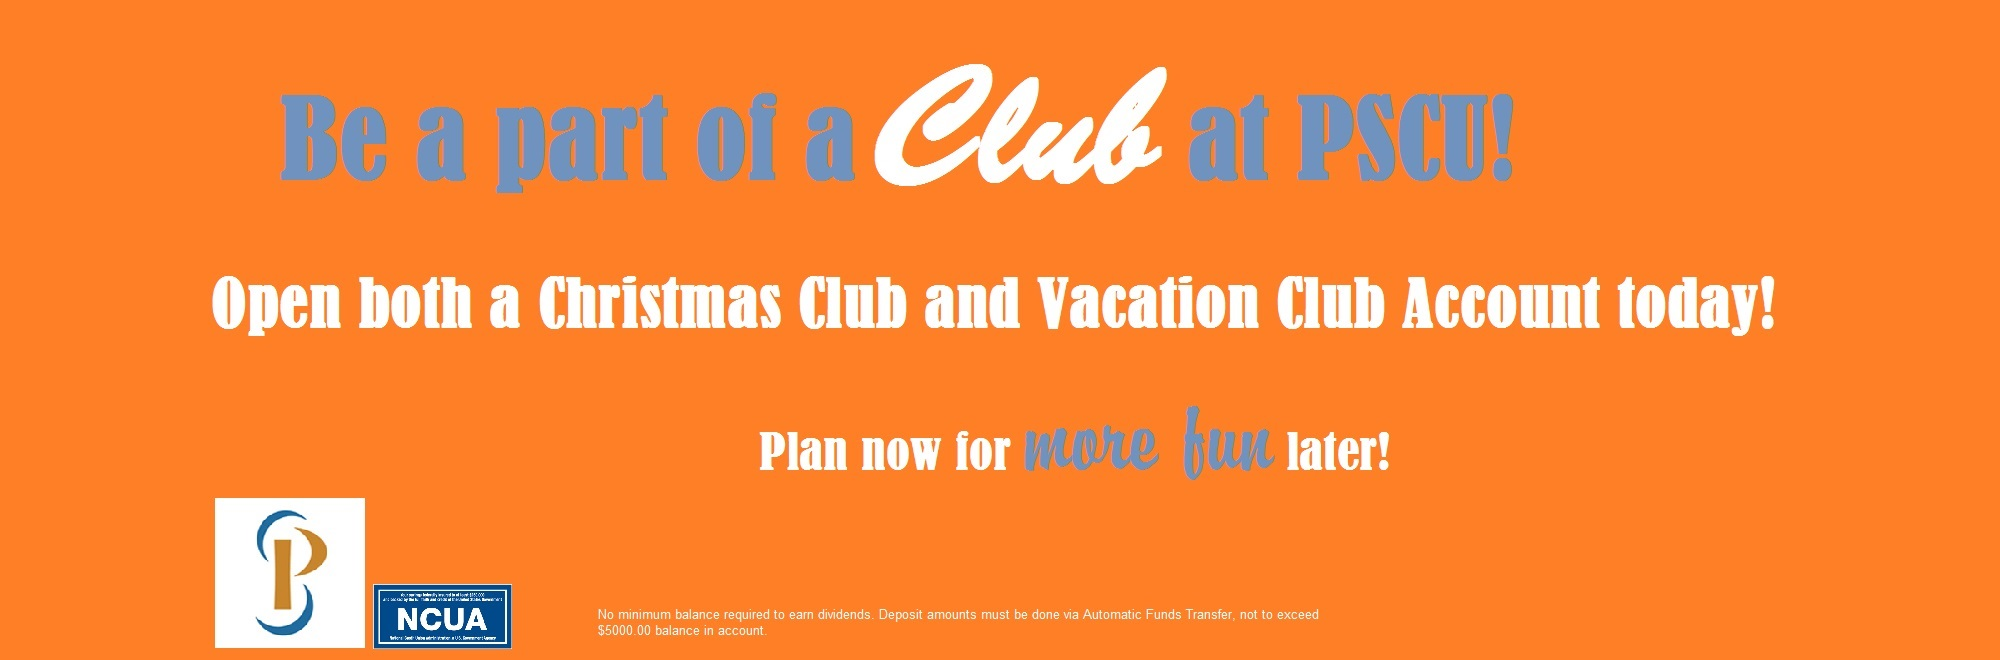 Christmas Club and Vacation Club Accounts